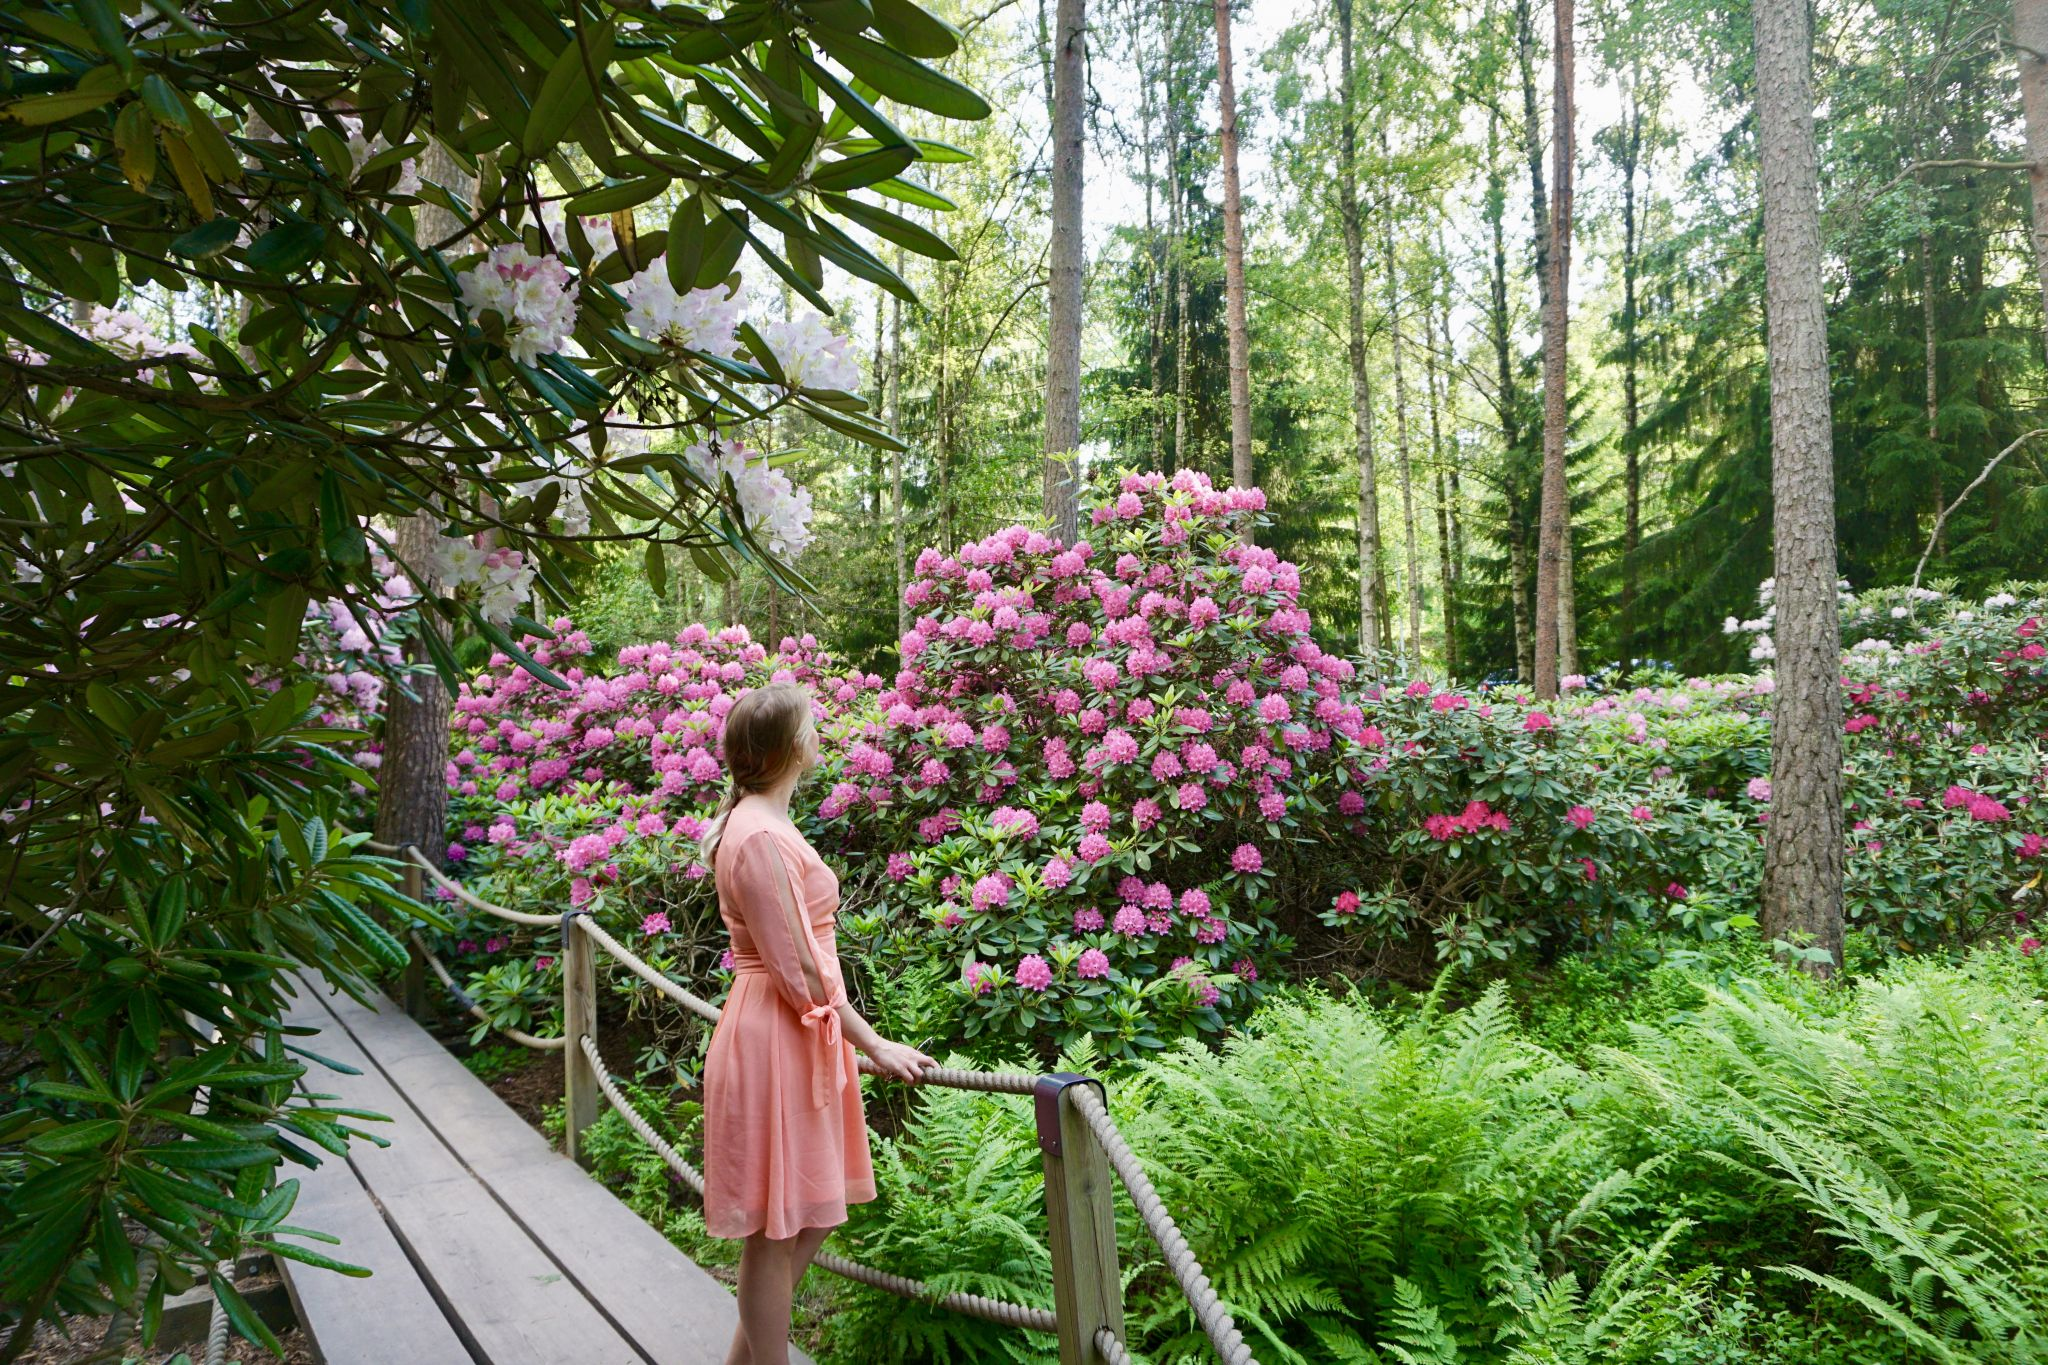 Thousands and thousands of rhododendrons in full bloom in Alppiruusupuisto in Helsinki